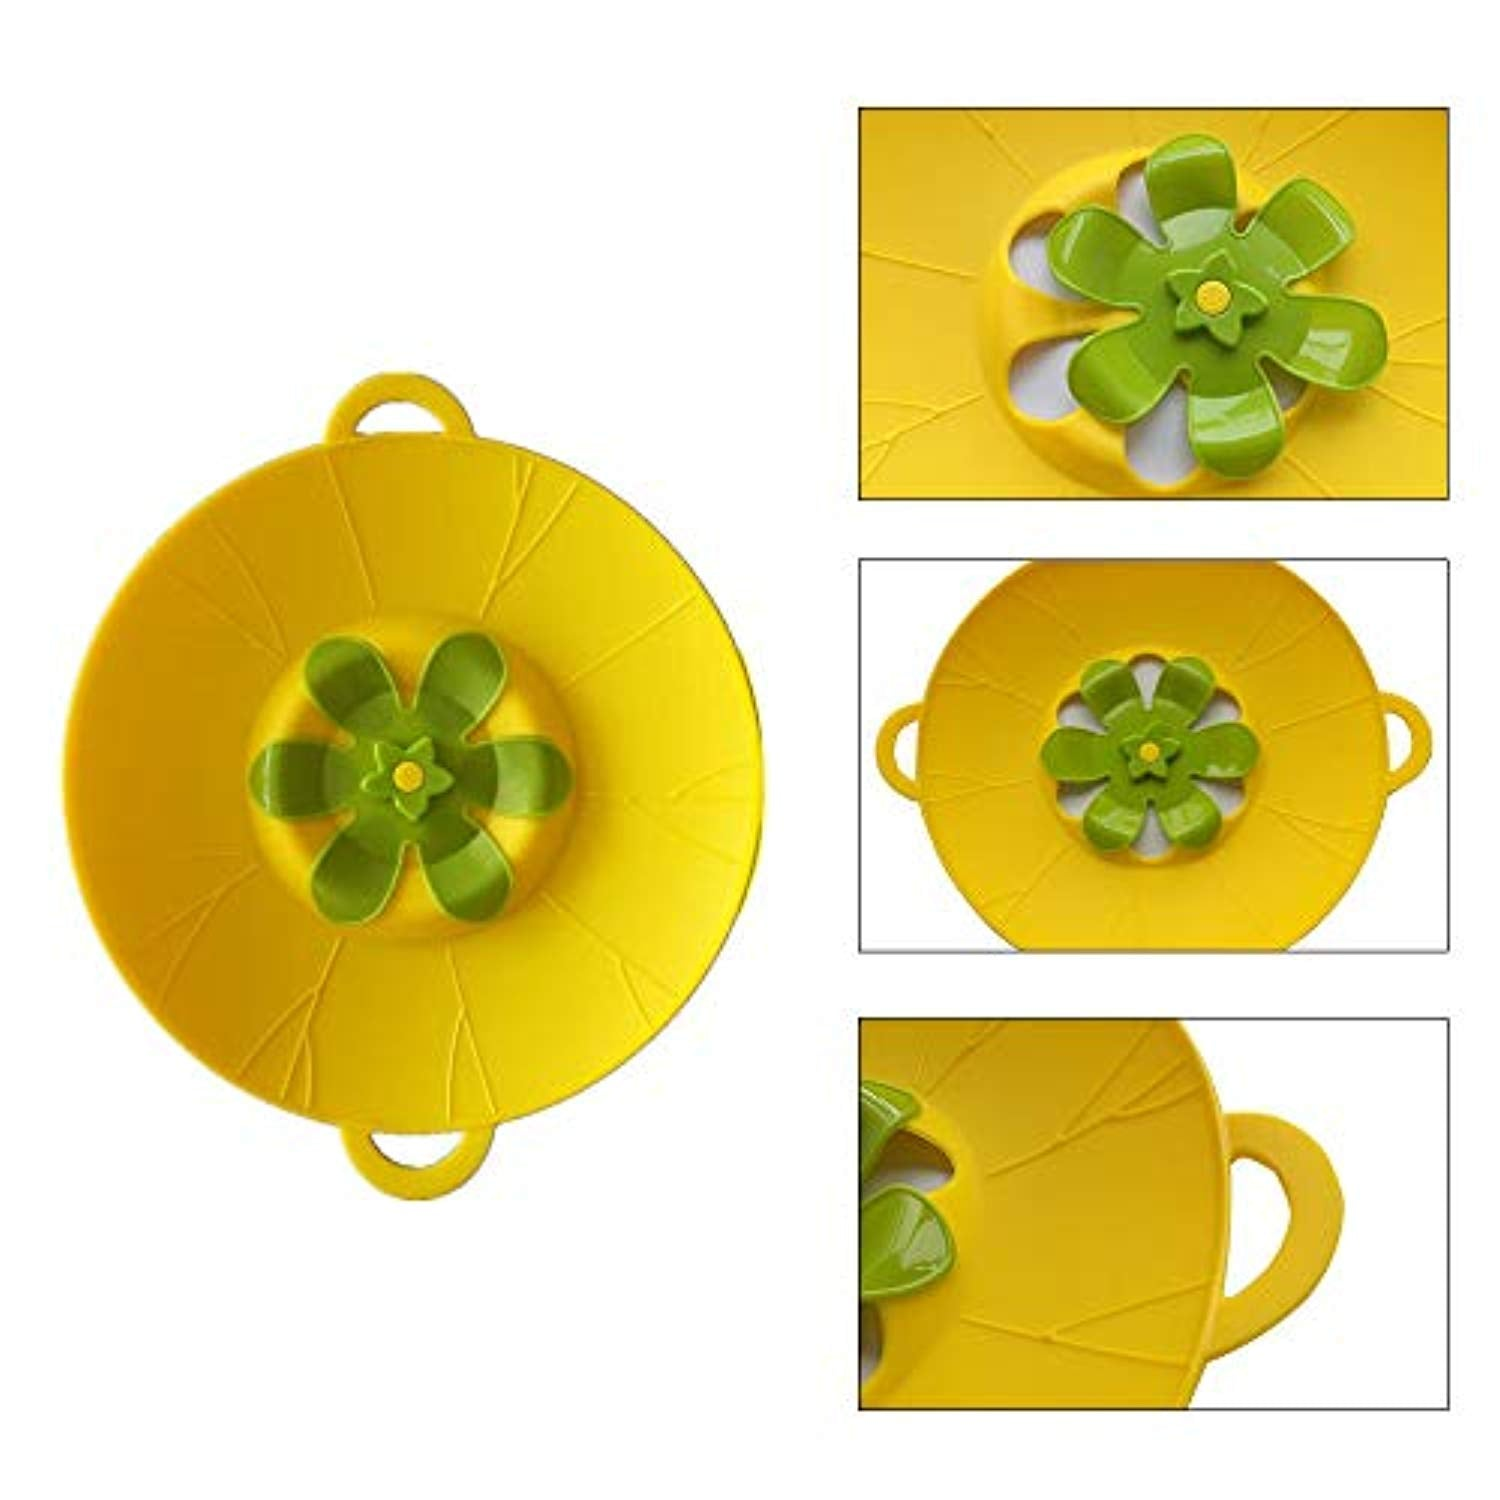 Spill Stopper Lid Cover 10.2 inch Silicone Boil Over Safeguard Pot Lid Prevent Messy Spillovers BPA-Free Food Grade Anti Spill Pan Cover Multi-Function Cooking Kitchen Tool